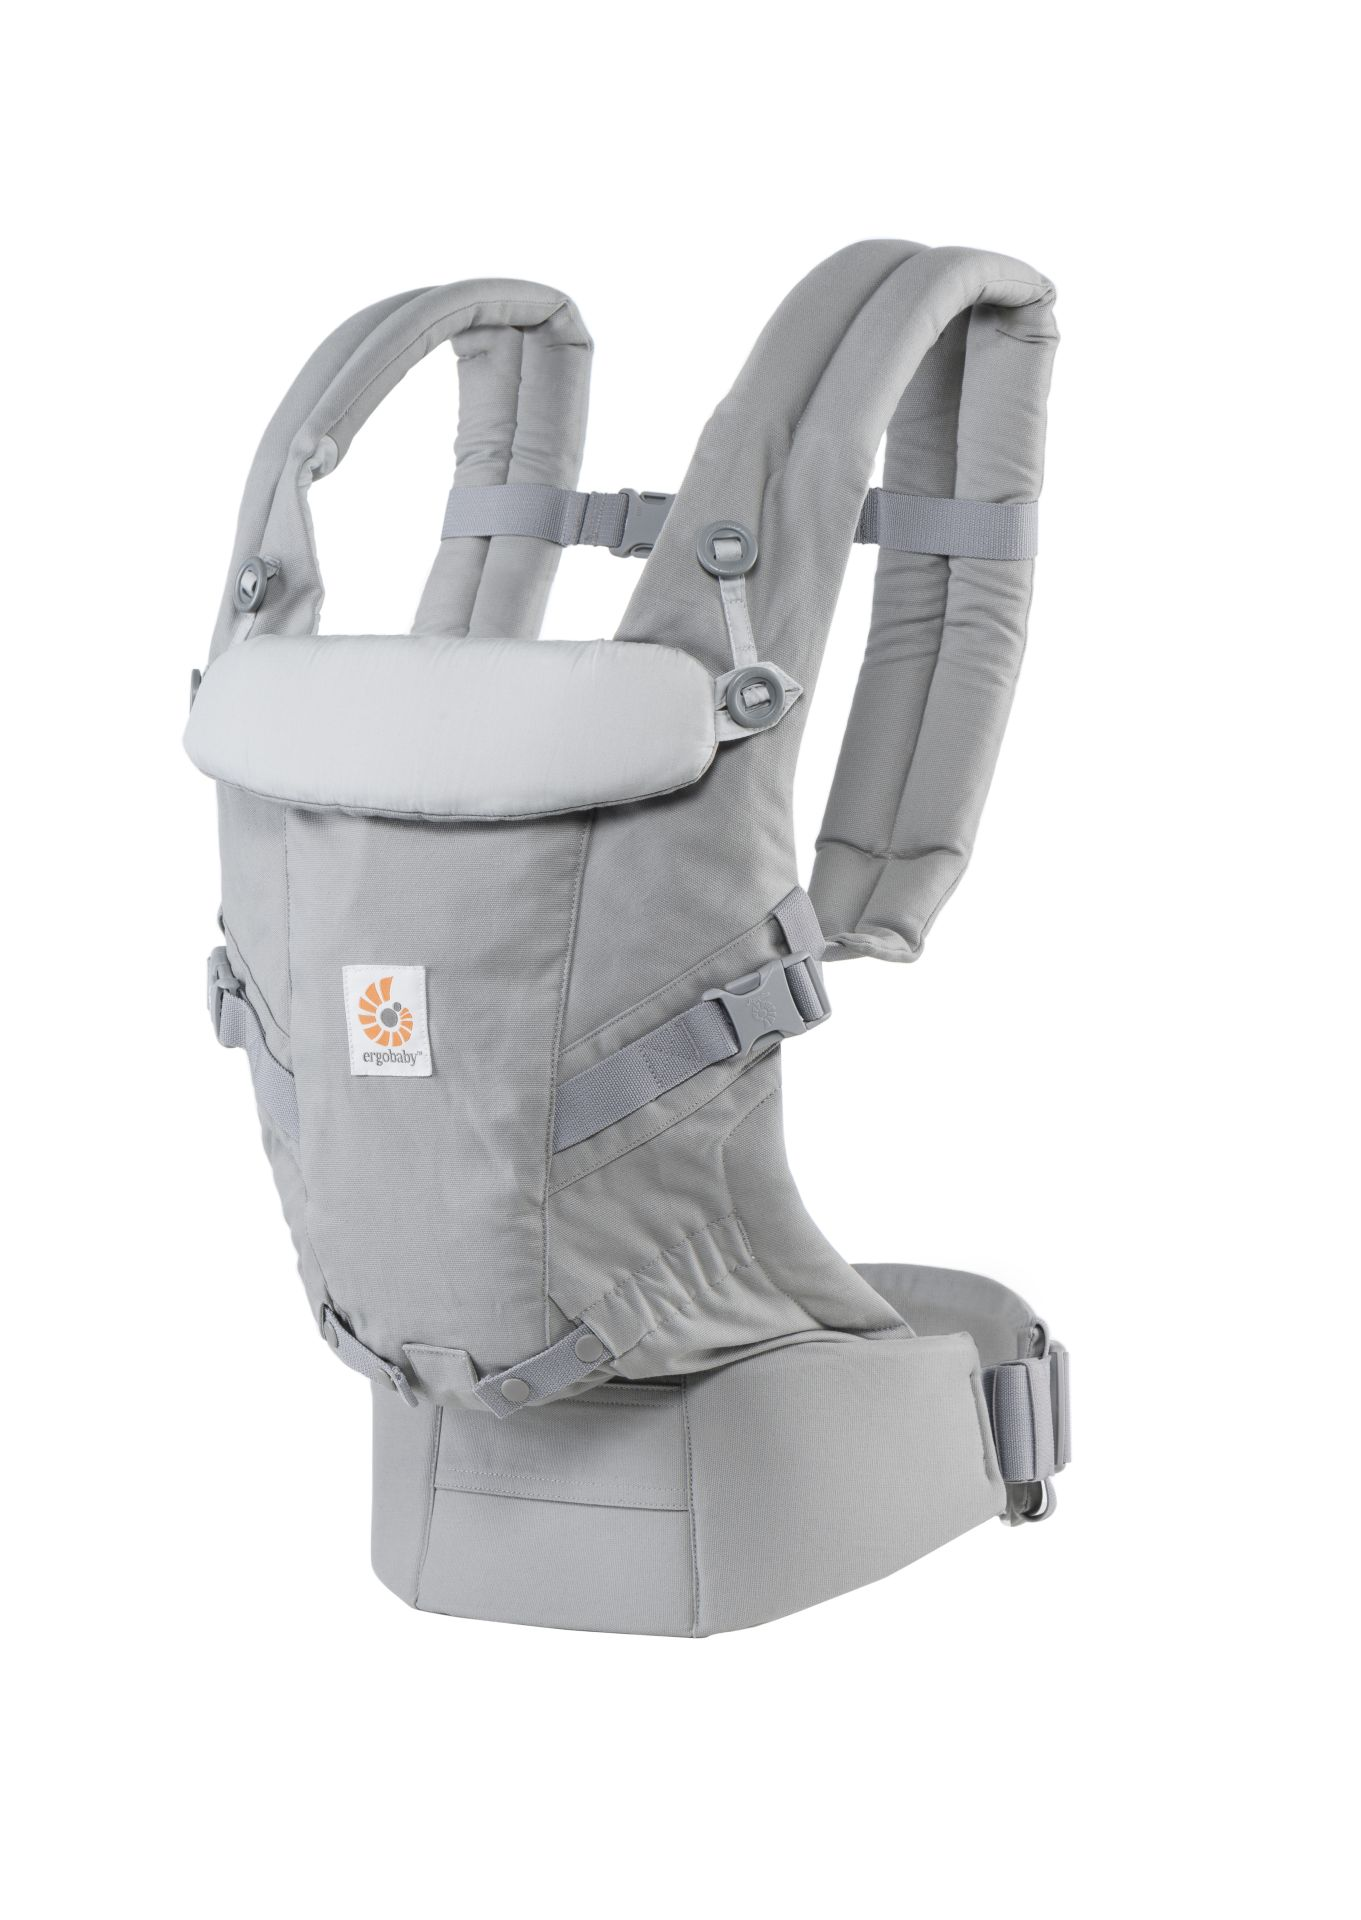 Ergobaby Baby Carrier Adapt Pearl Grey Buy At Kidsroom